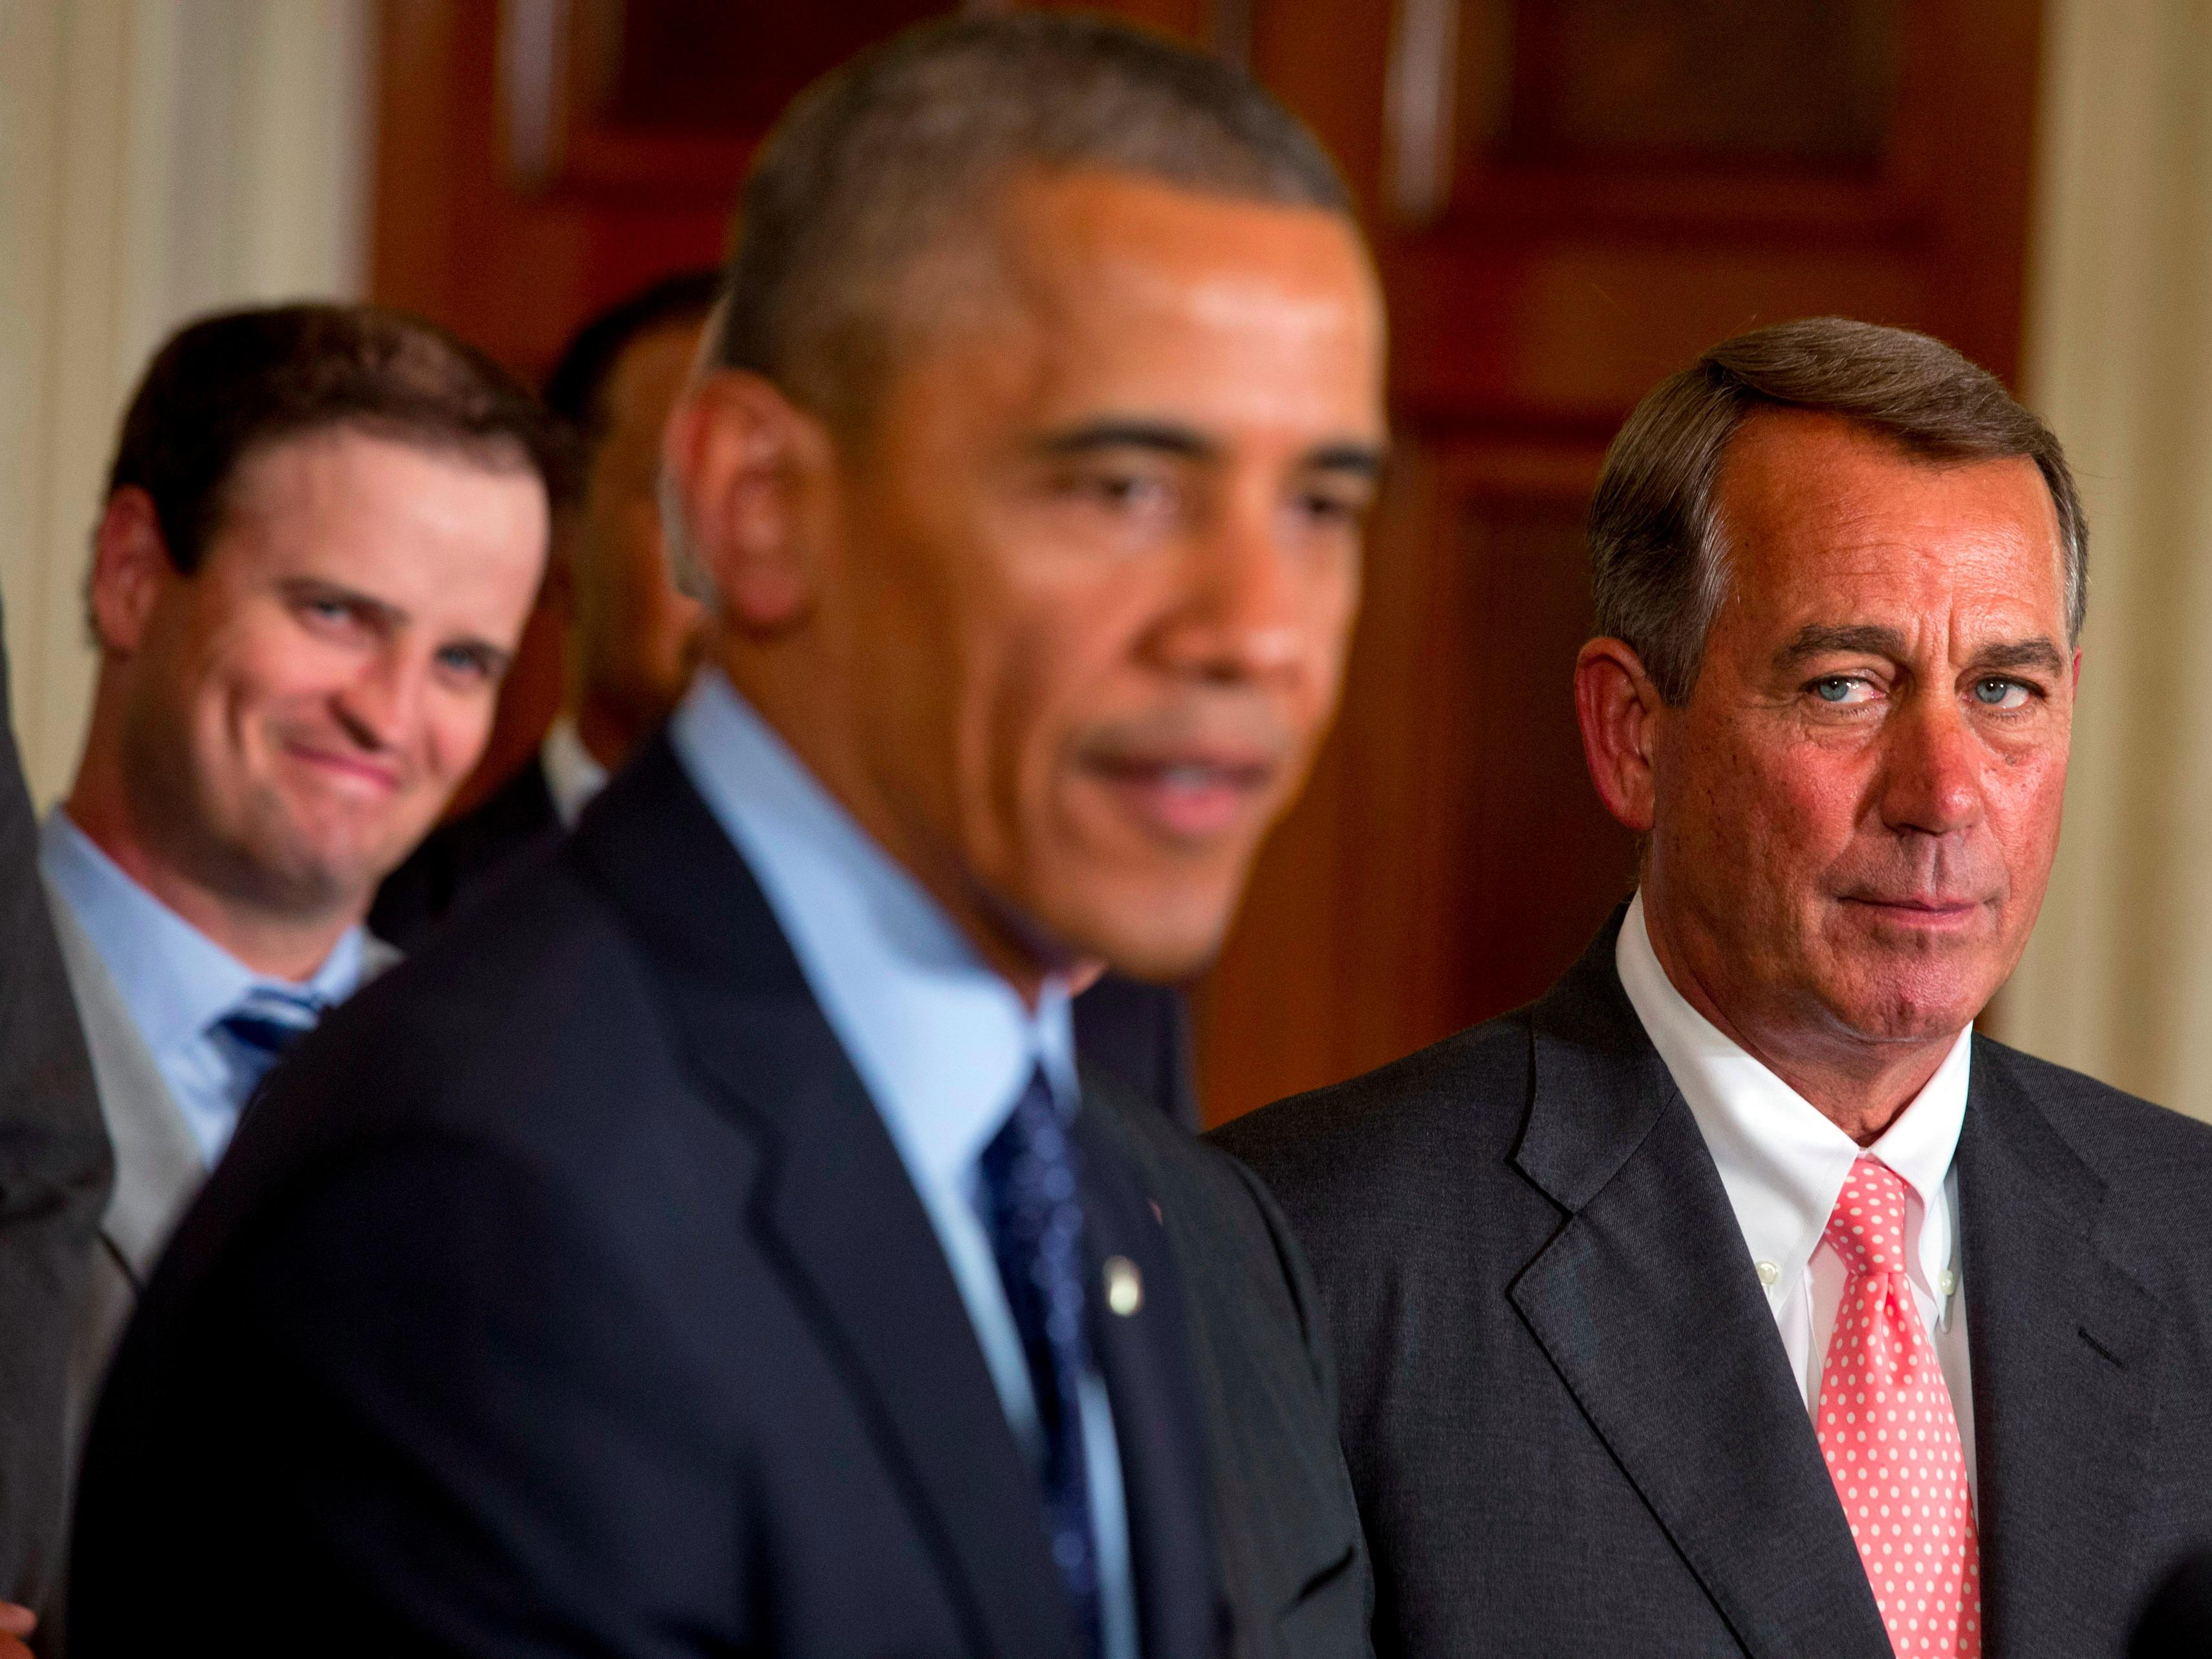 House Republicans just won a major, unexpected victory in a battle with Obama